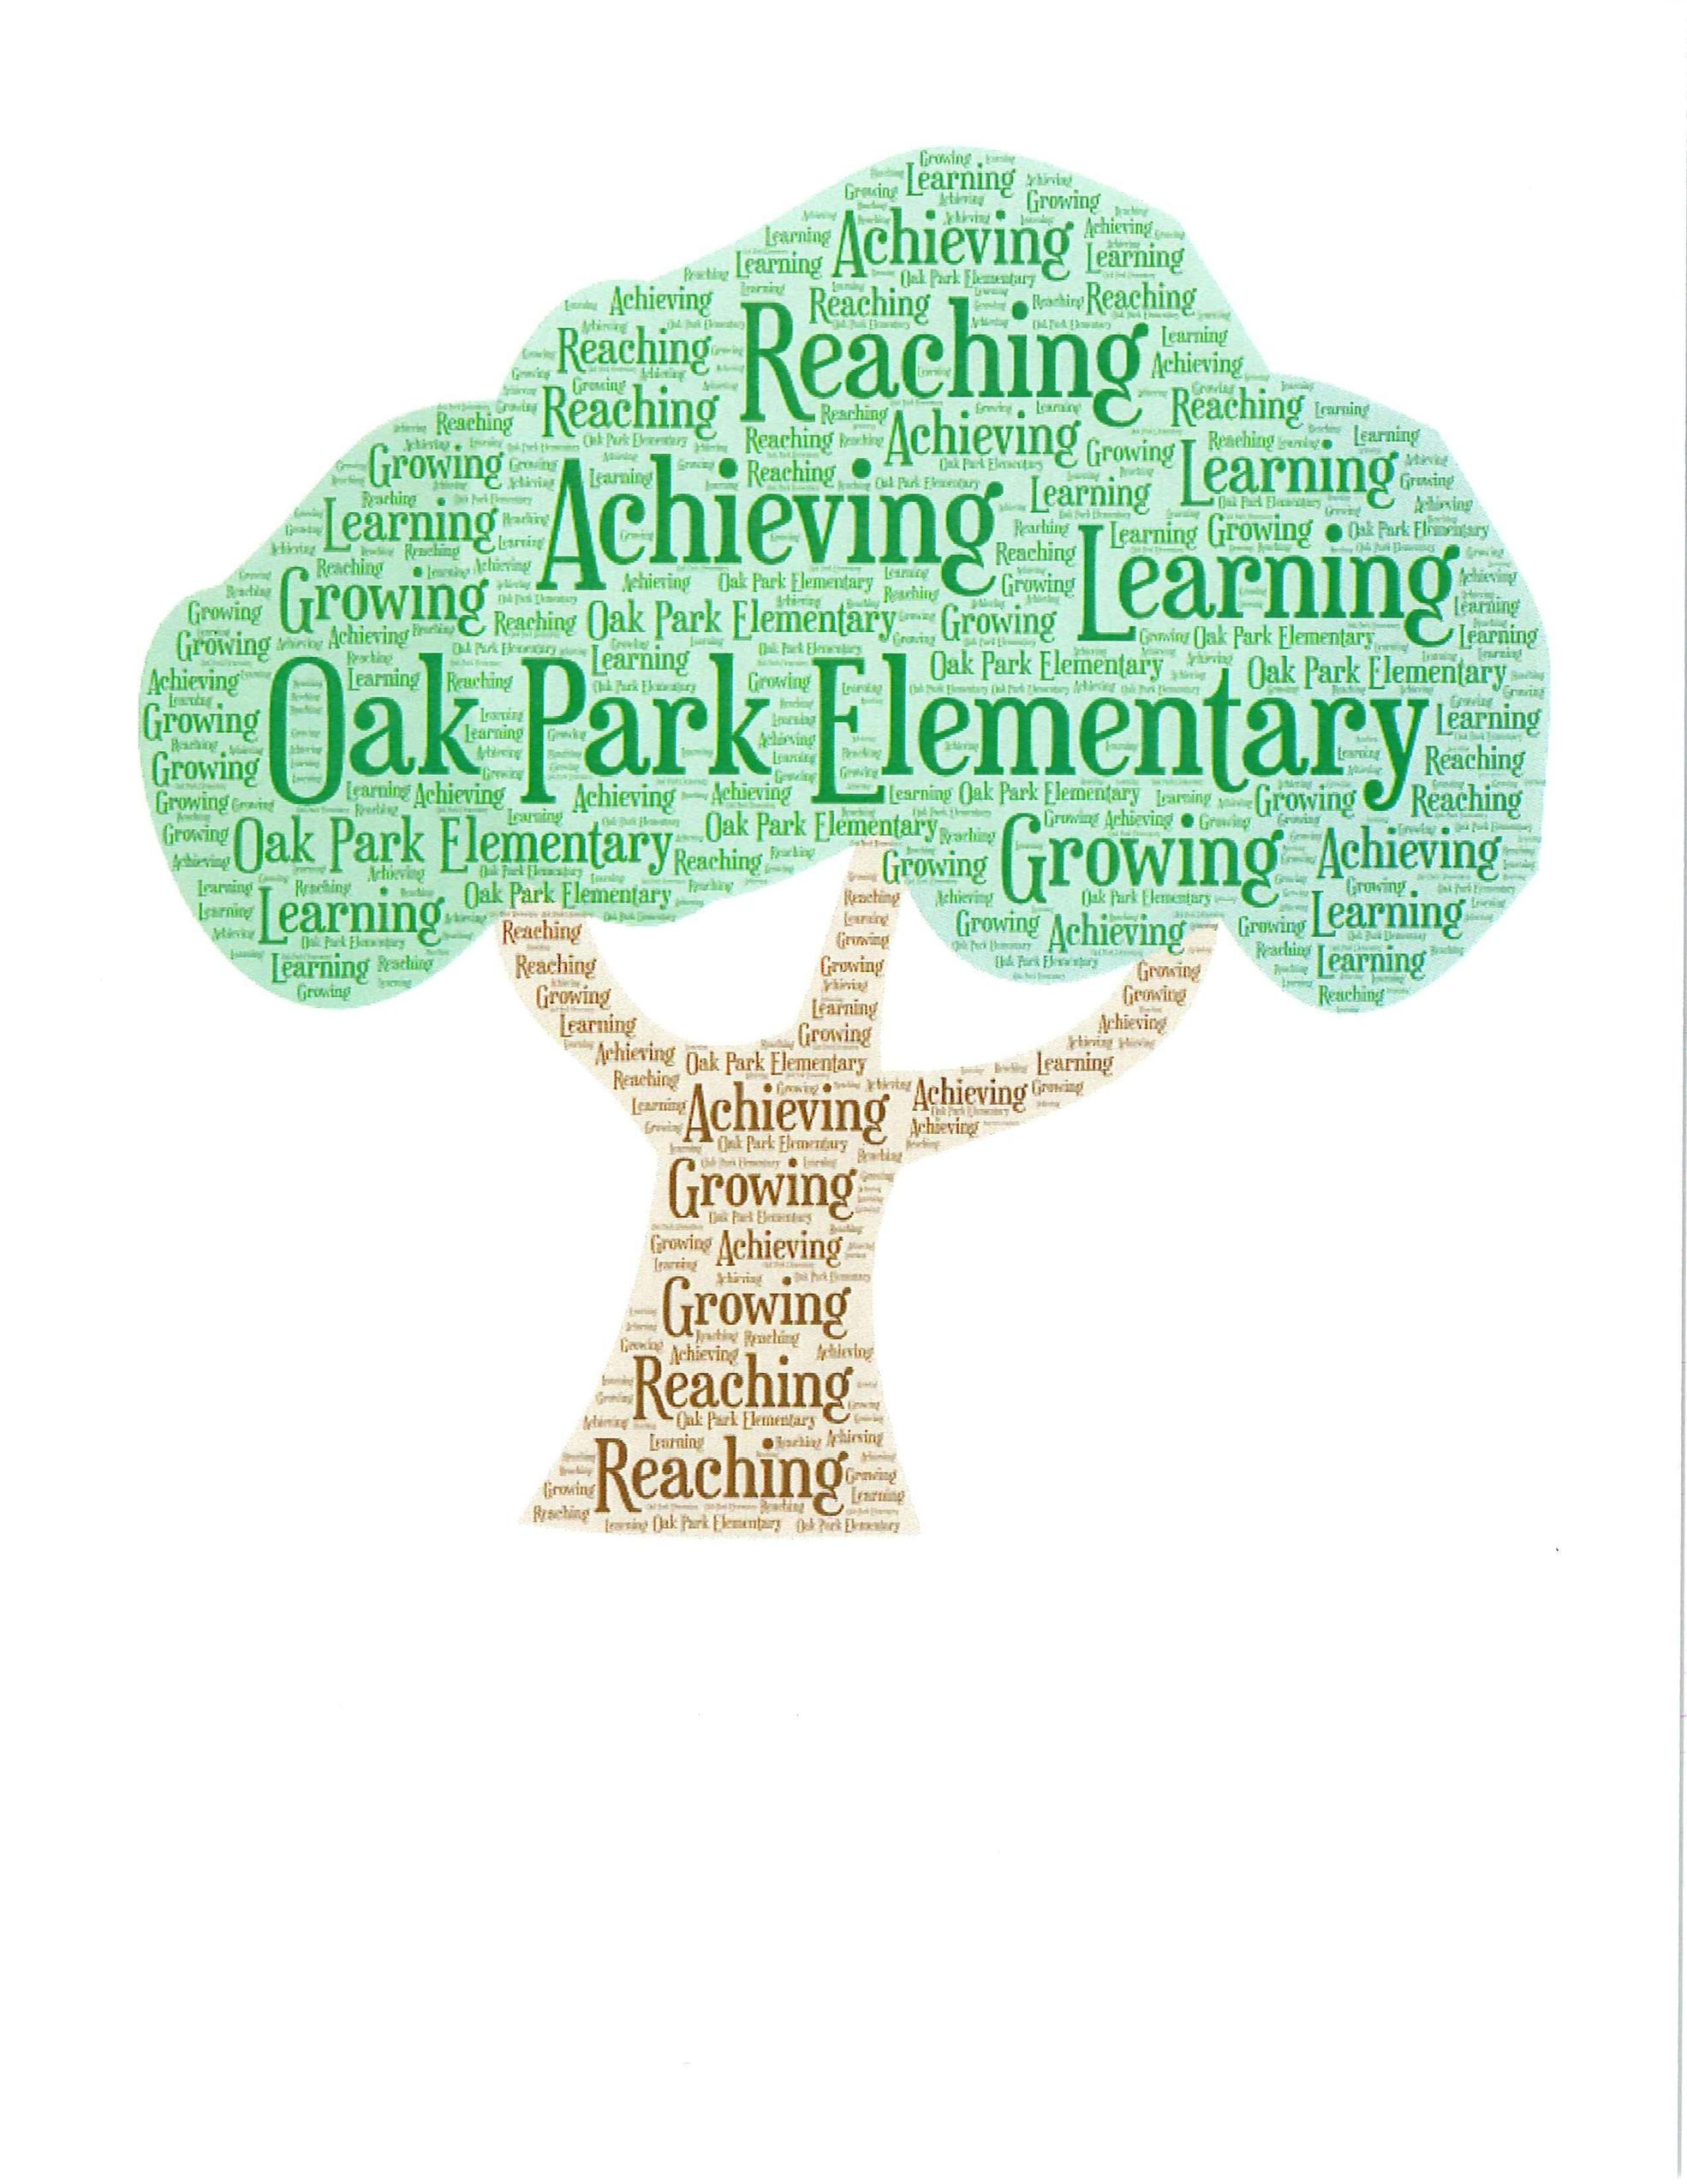 Word Art Tree with words Oak Park Elementary Achieving, Reaching, Learning, Growing